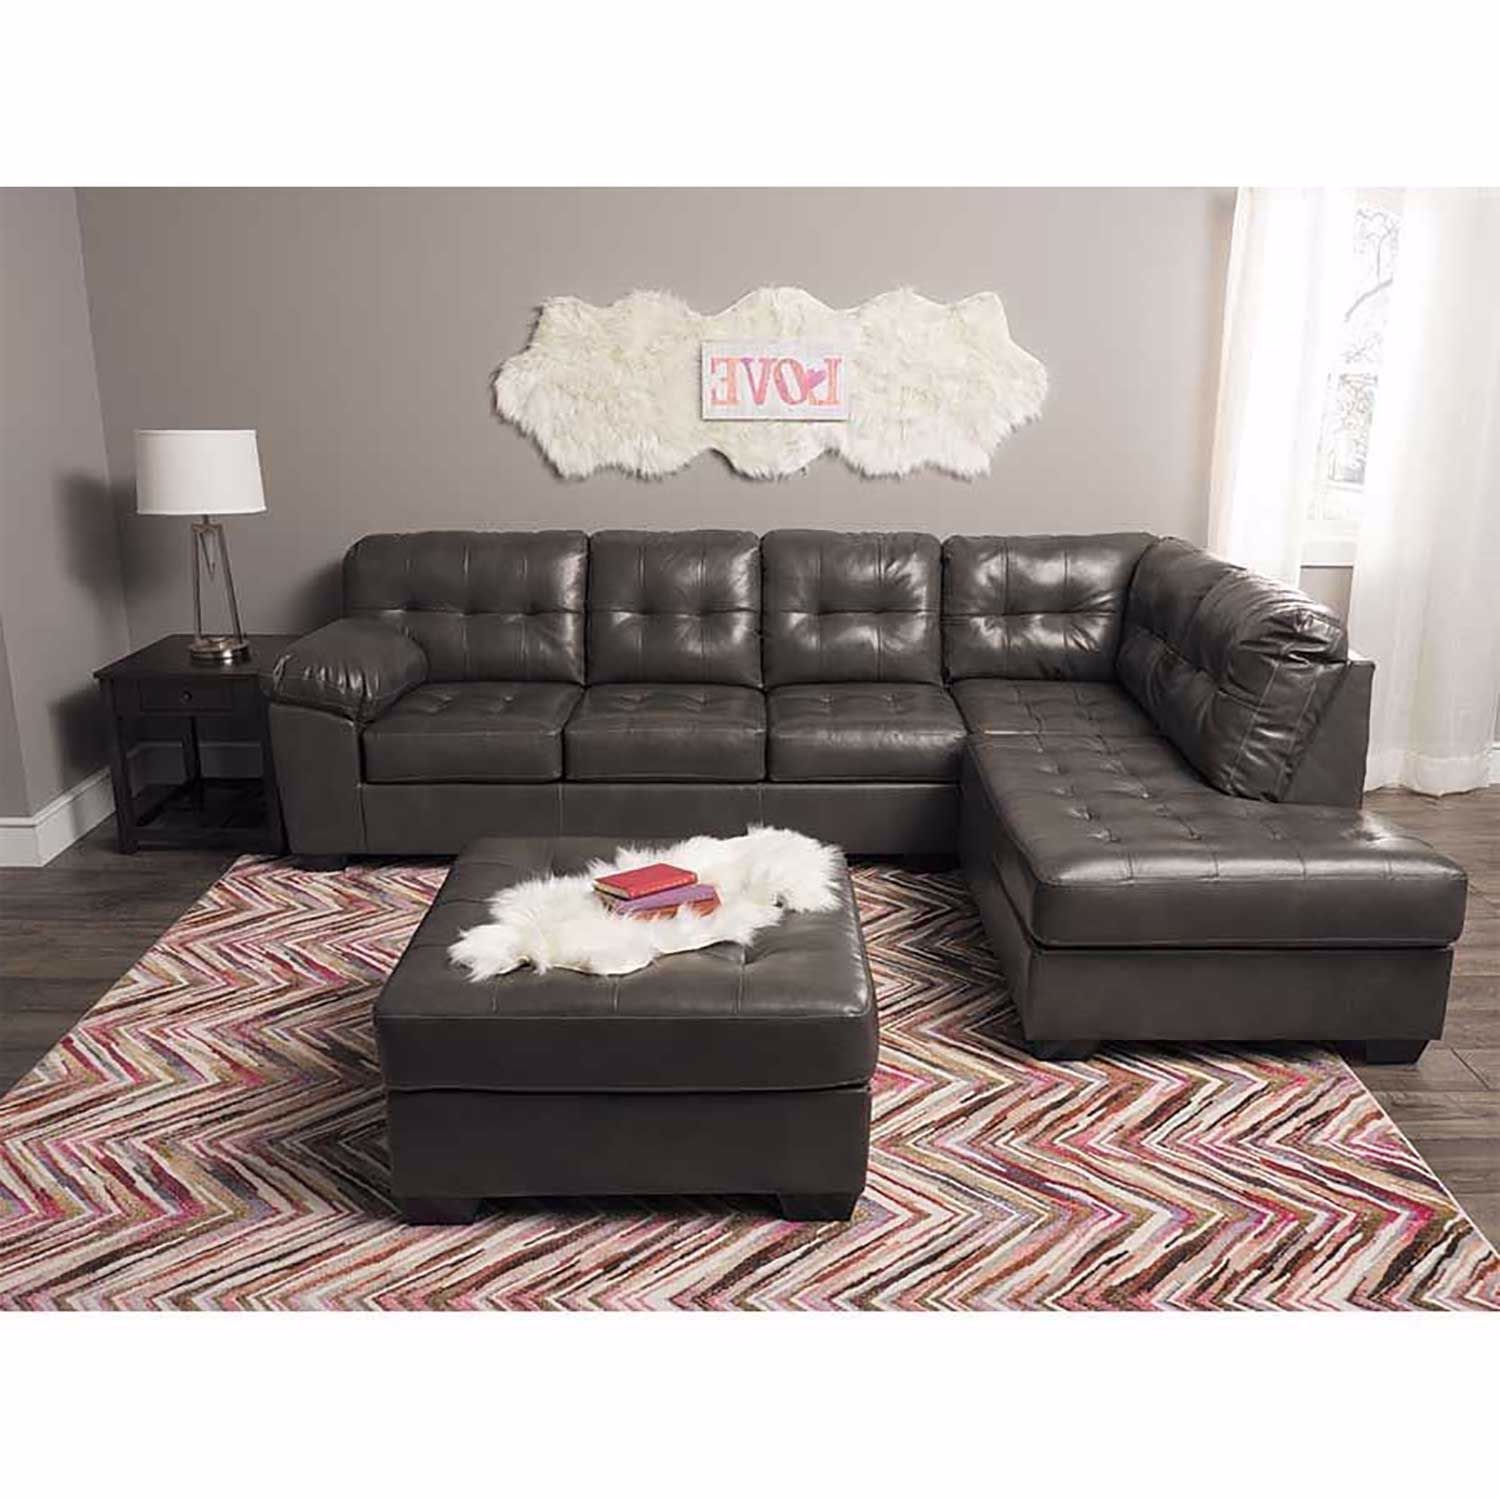 Ashley Furniture Texas Locations: Alliston Gray 2PC Sectional W/ RAF Chaise 0N2-201RC-2PC